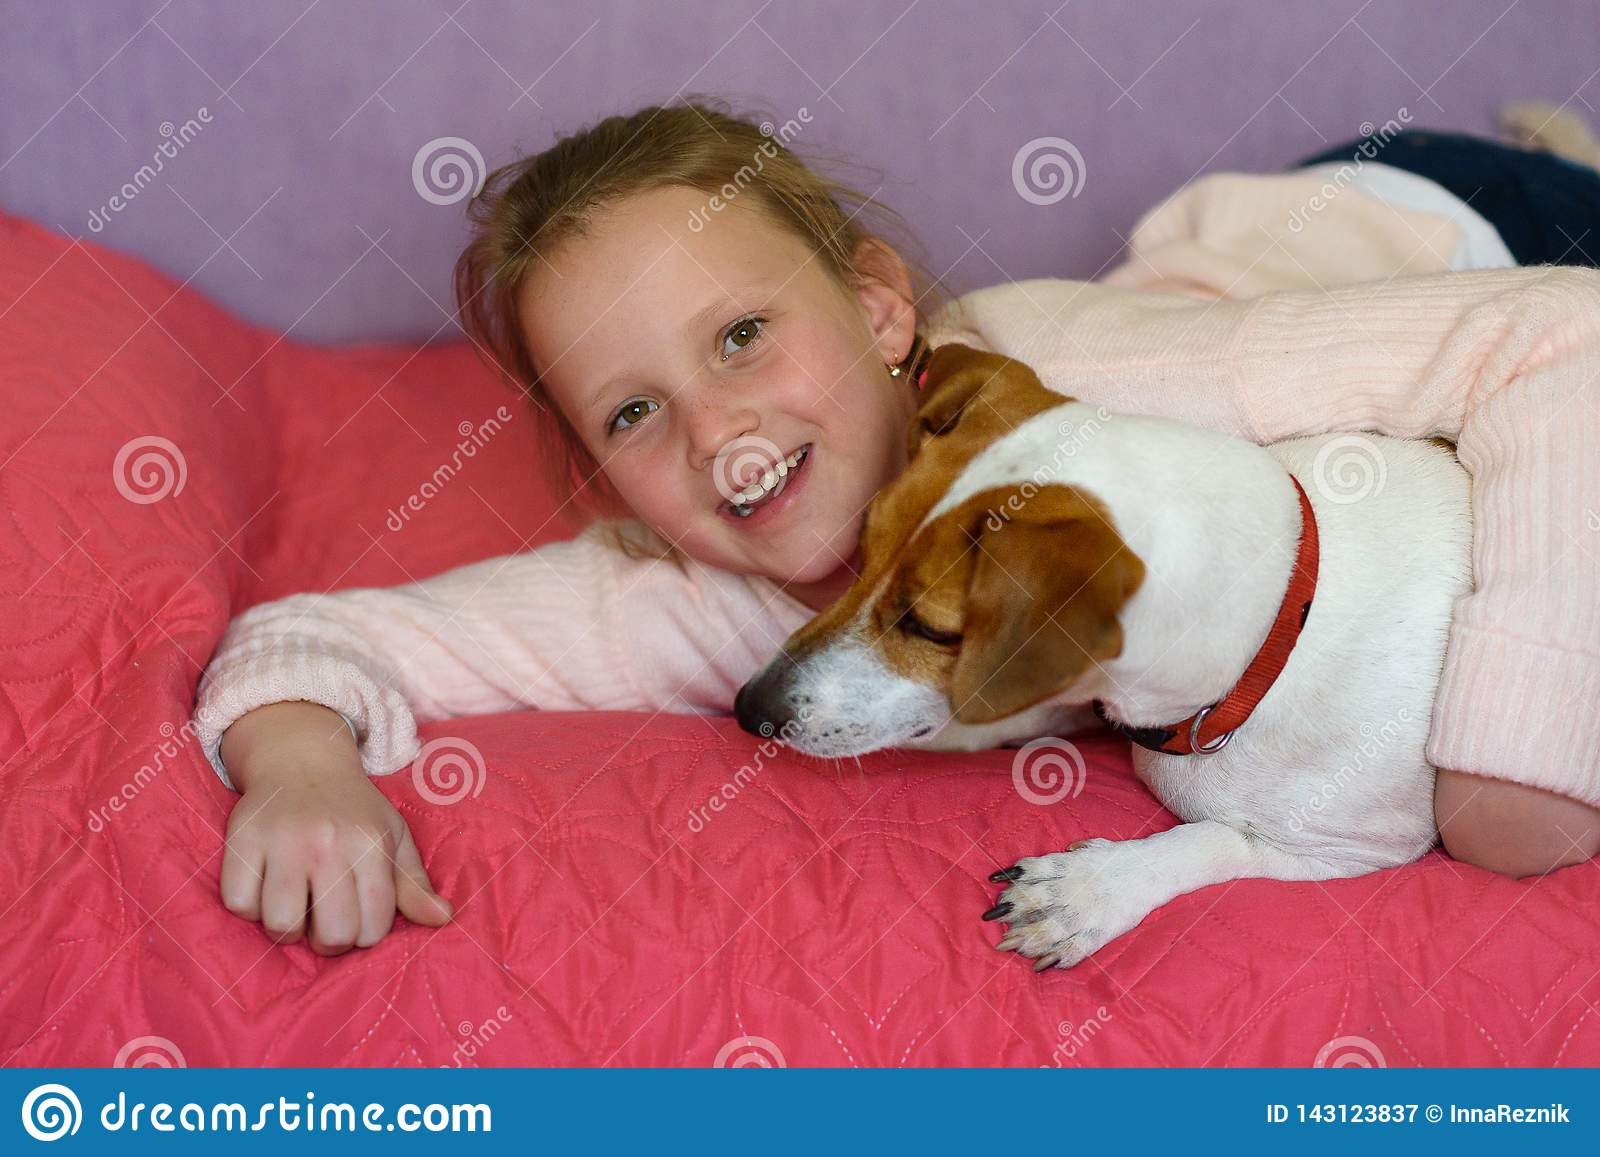 Little girl with dog at home in playroom.